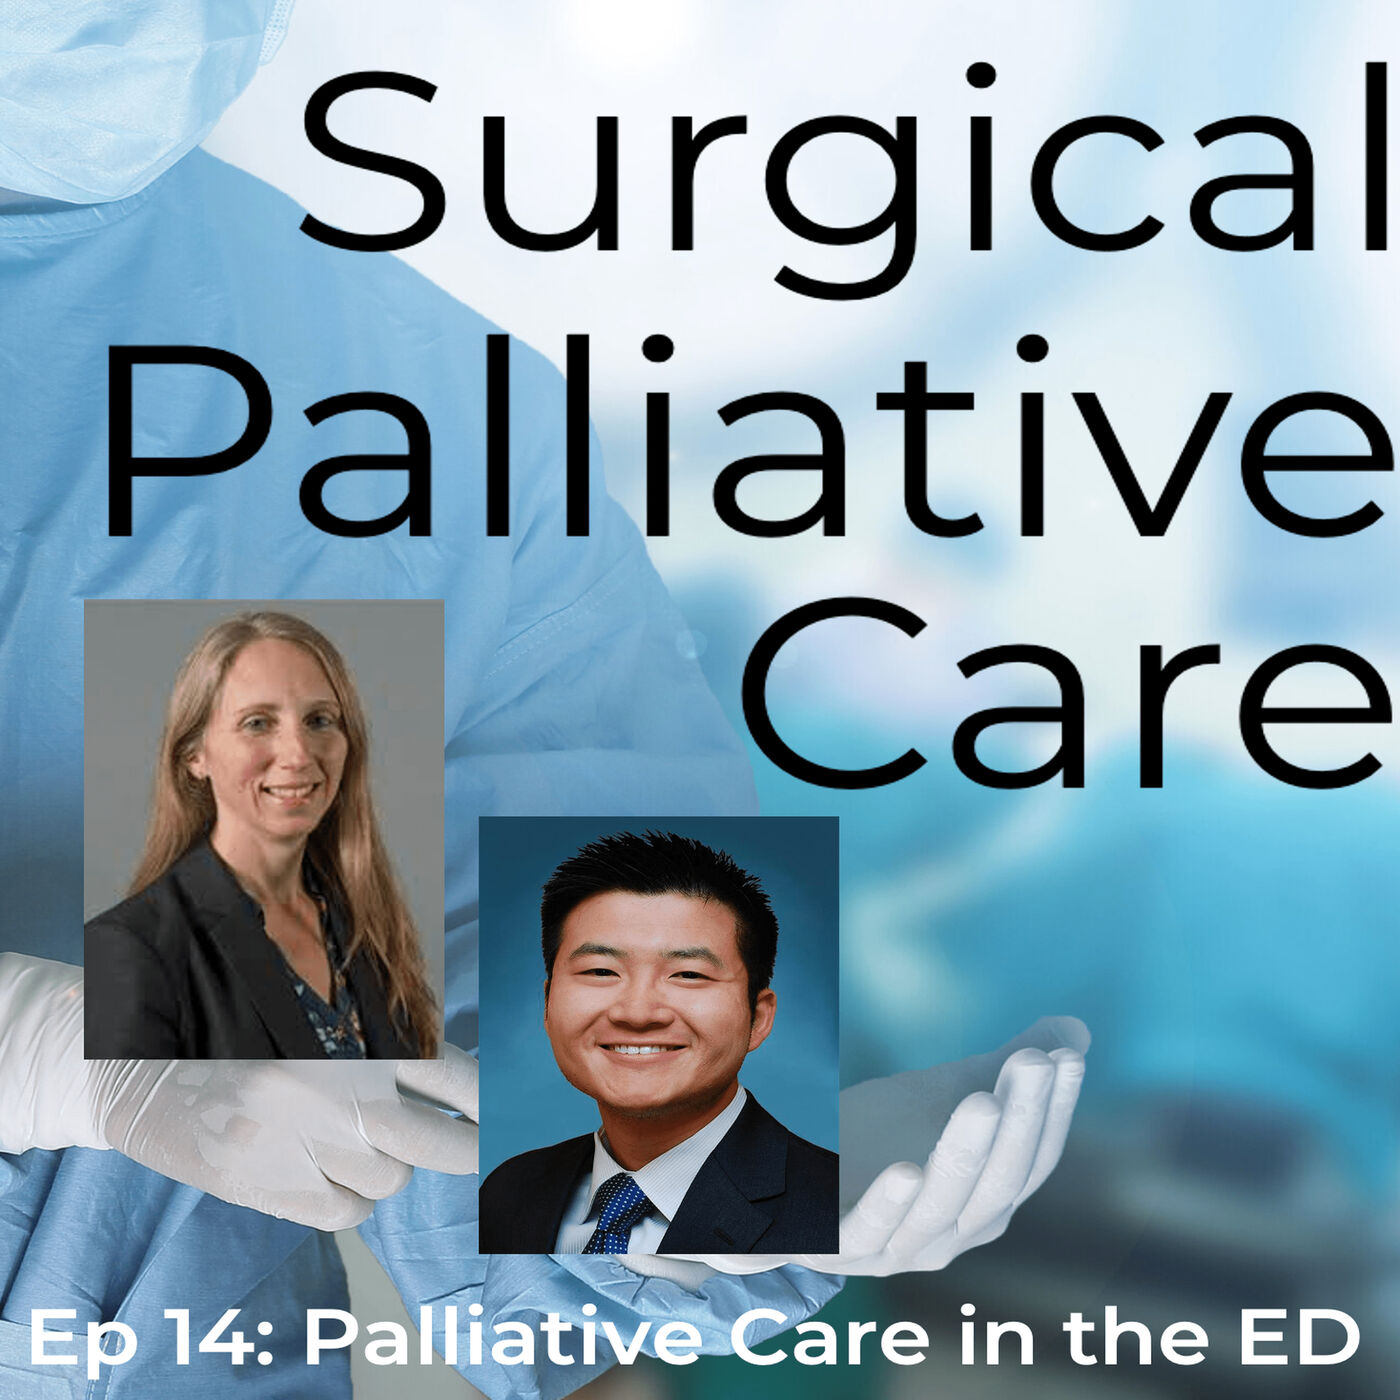 Palliative Care in the Emergency Department